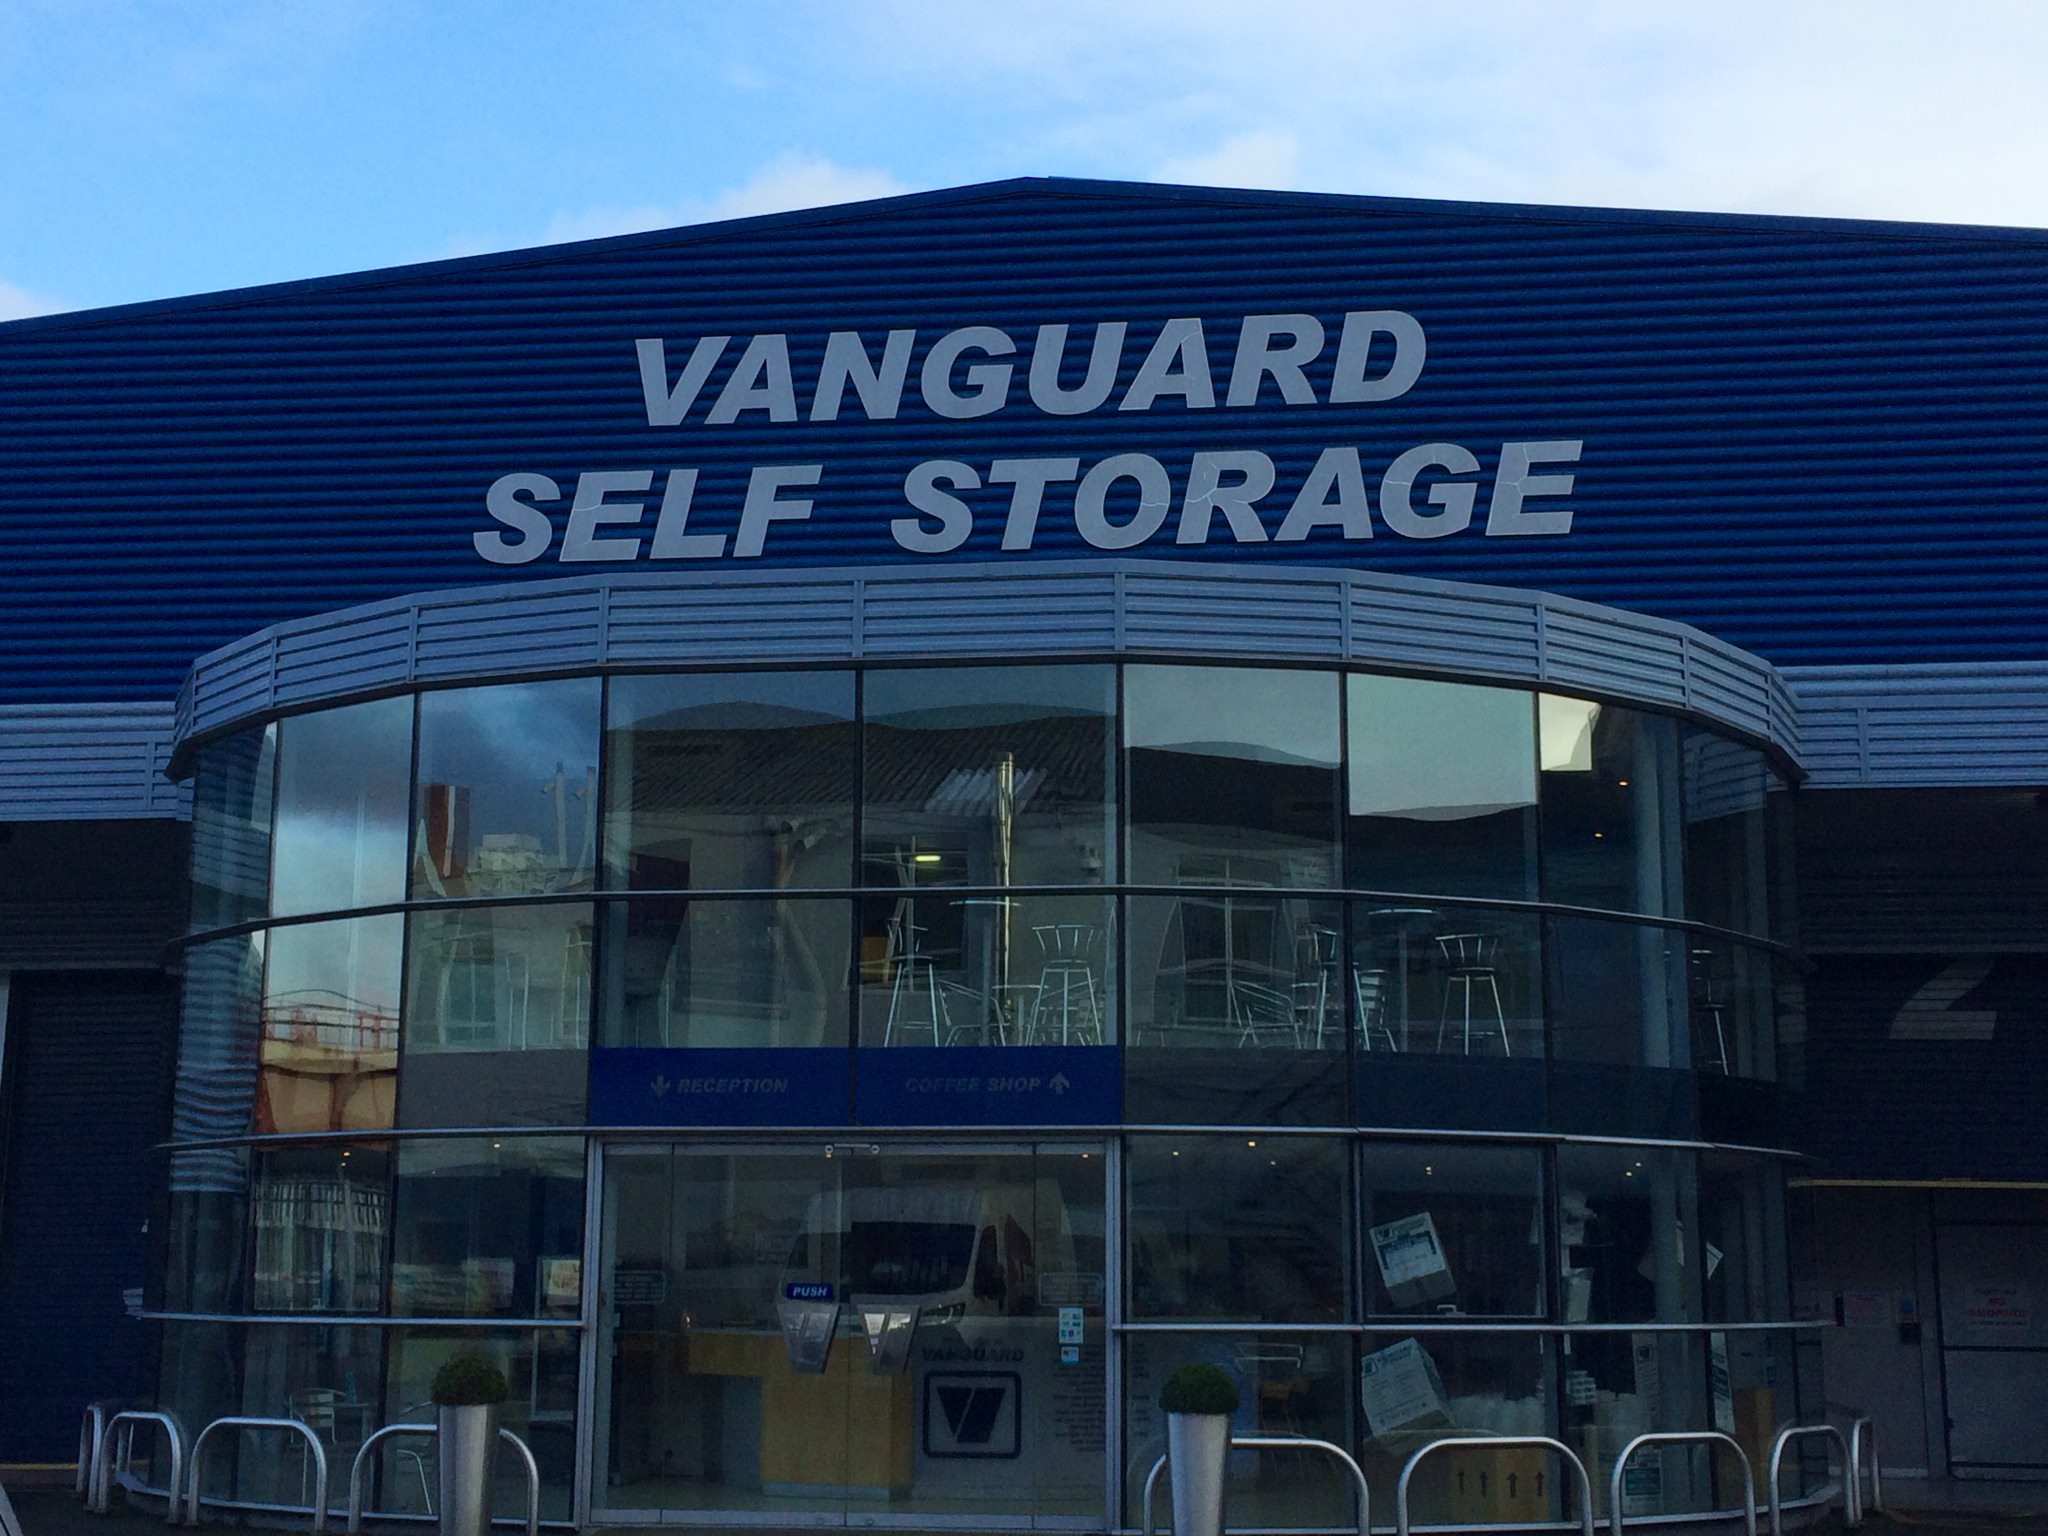 Self Storage In London Manchester Vanguard Self Storage ...